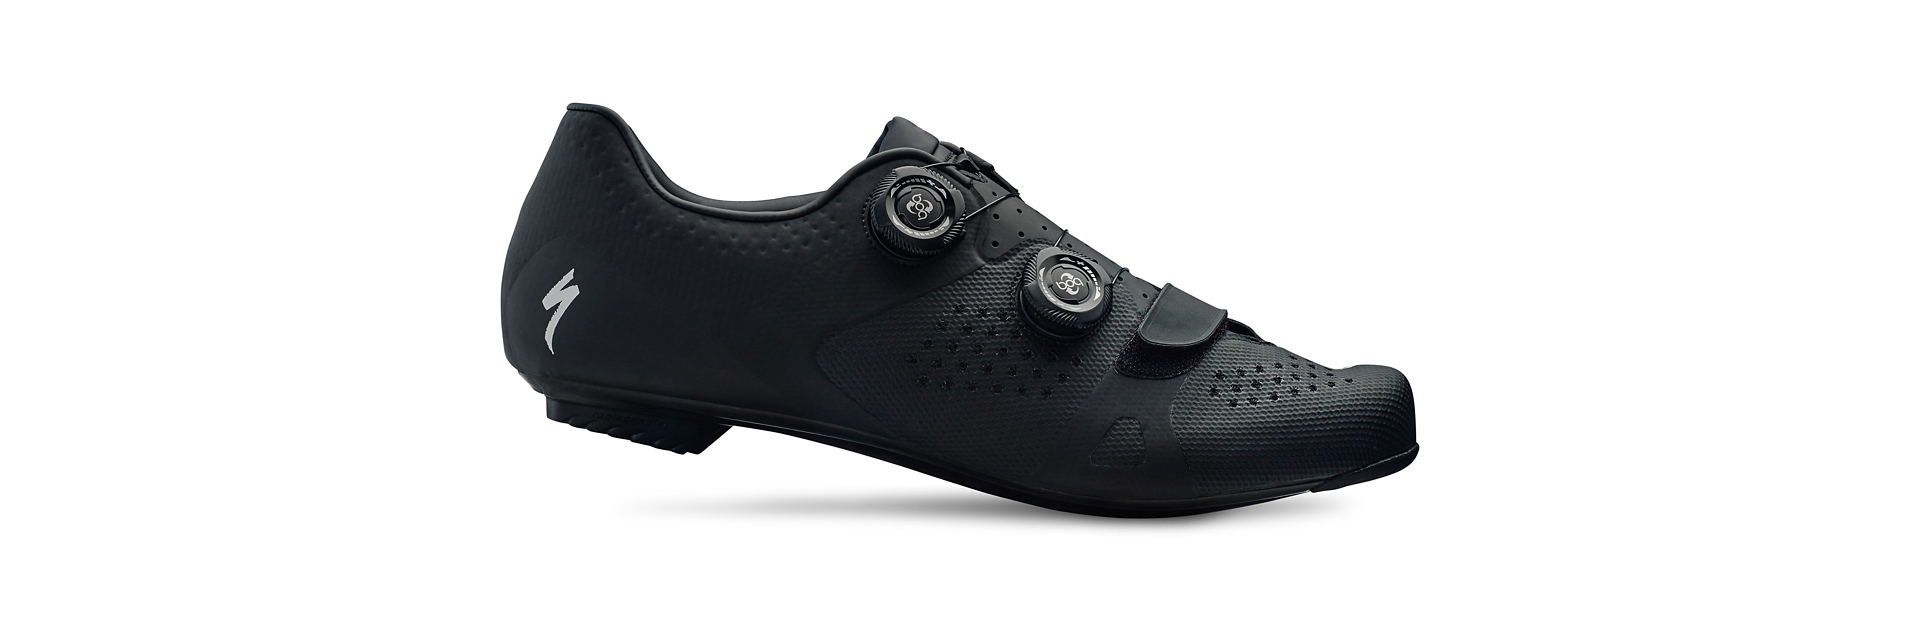 Specialized Torch 3.0 Road Shoes graphic